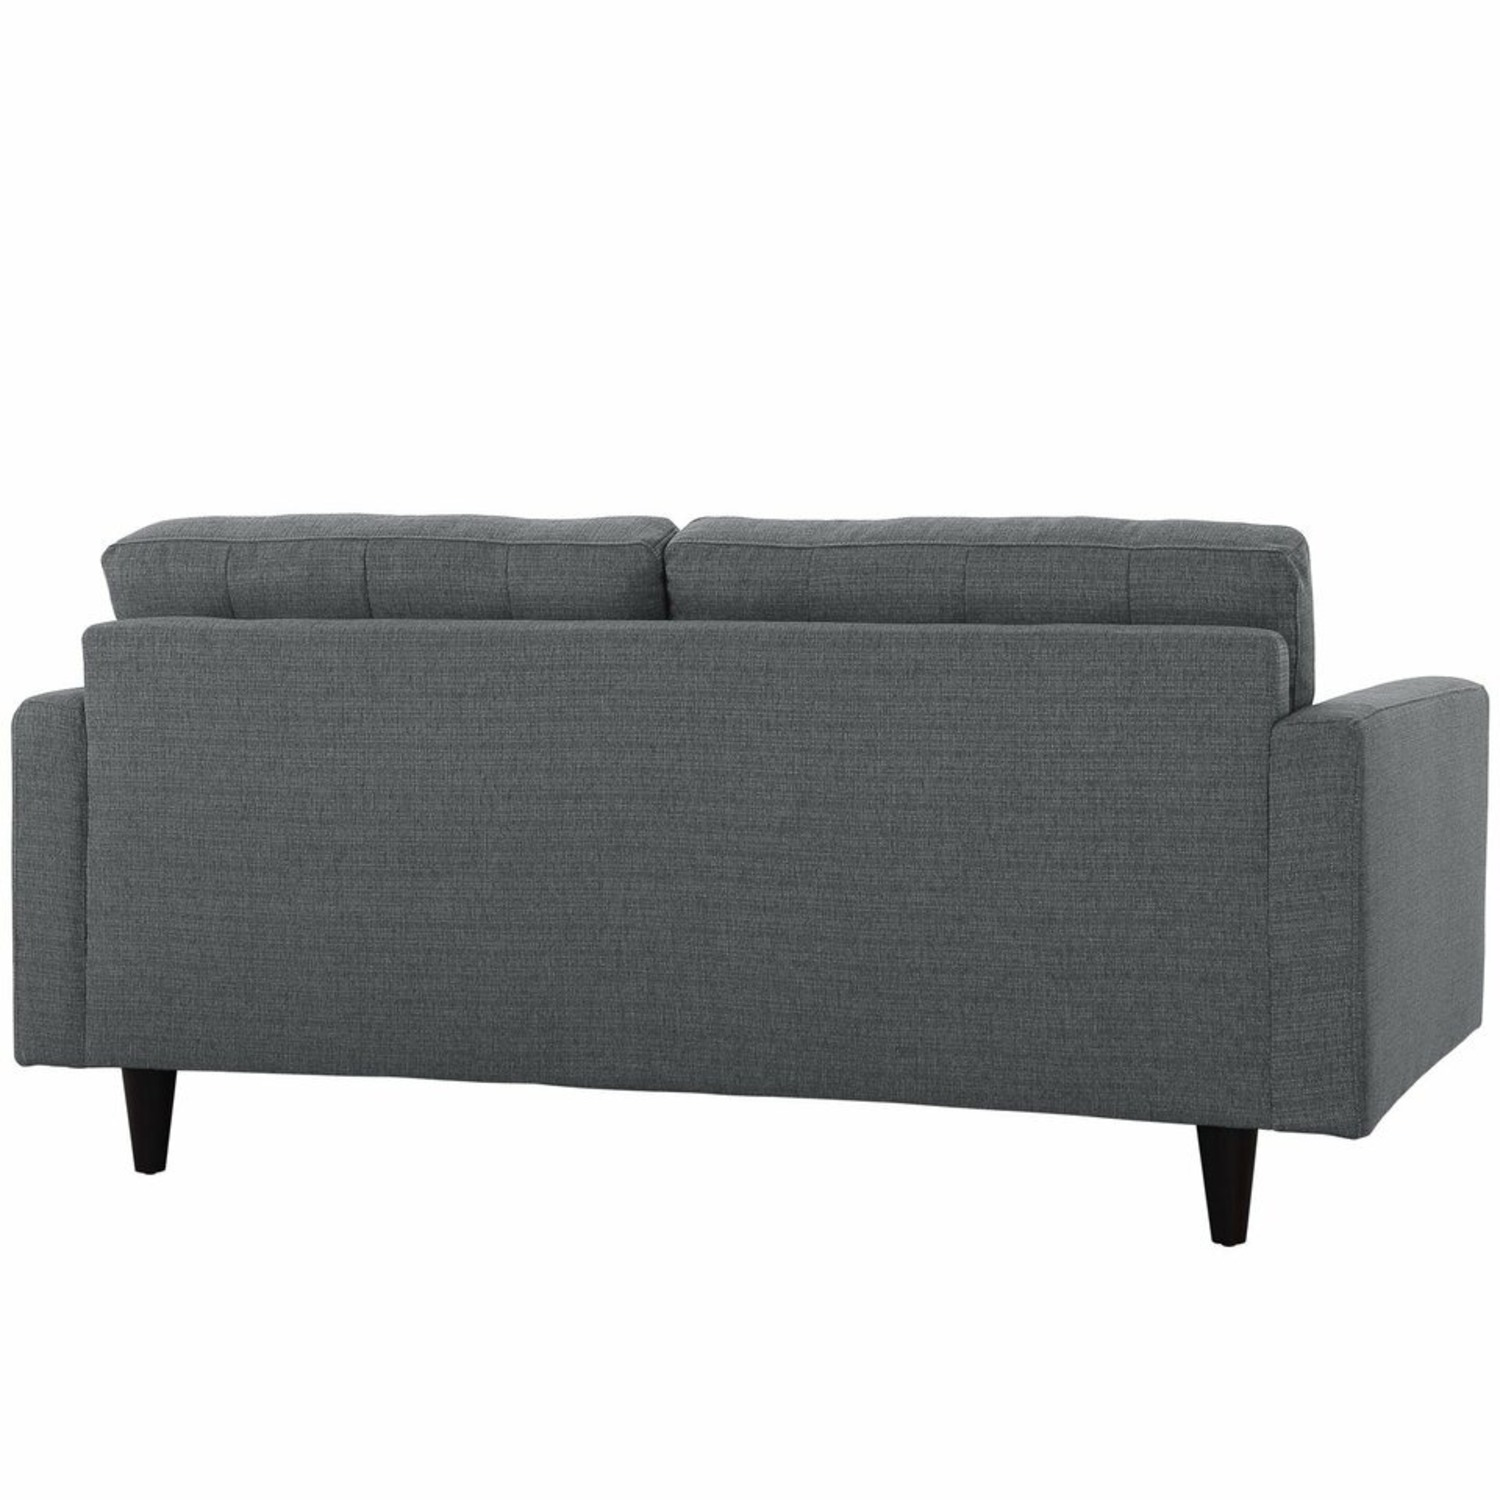 Loveseat In Gray Fabric Upholstery W/ Wood Legs - image-2